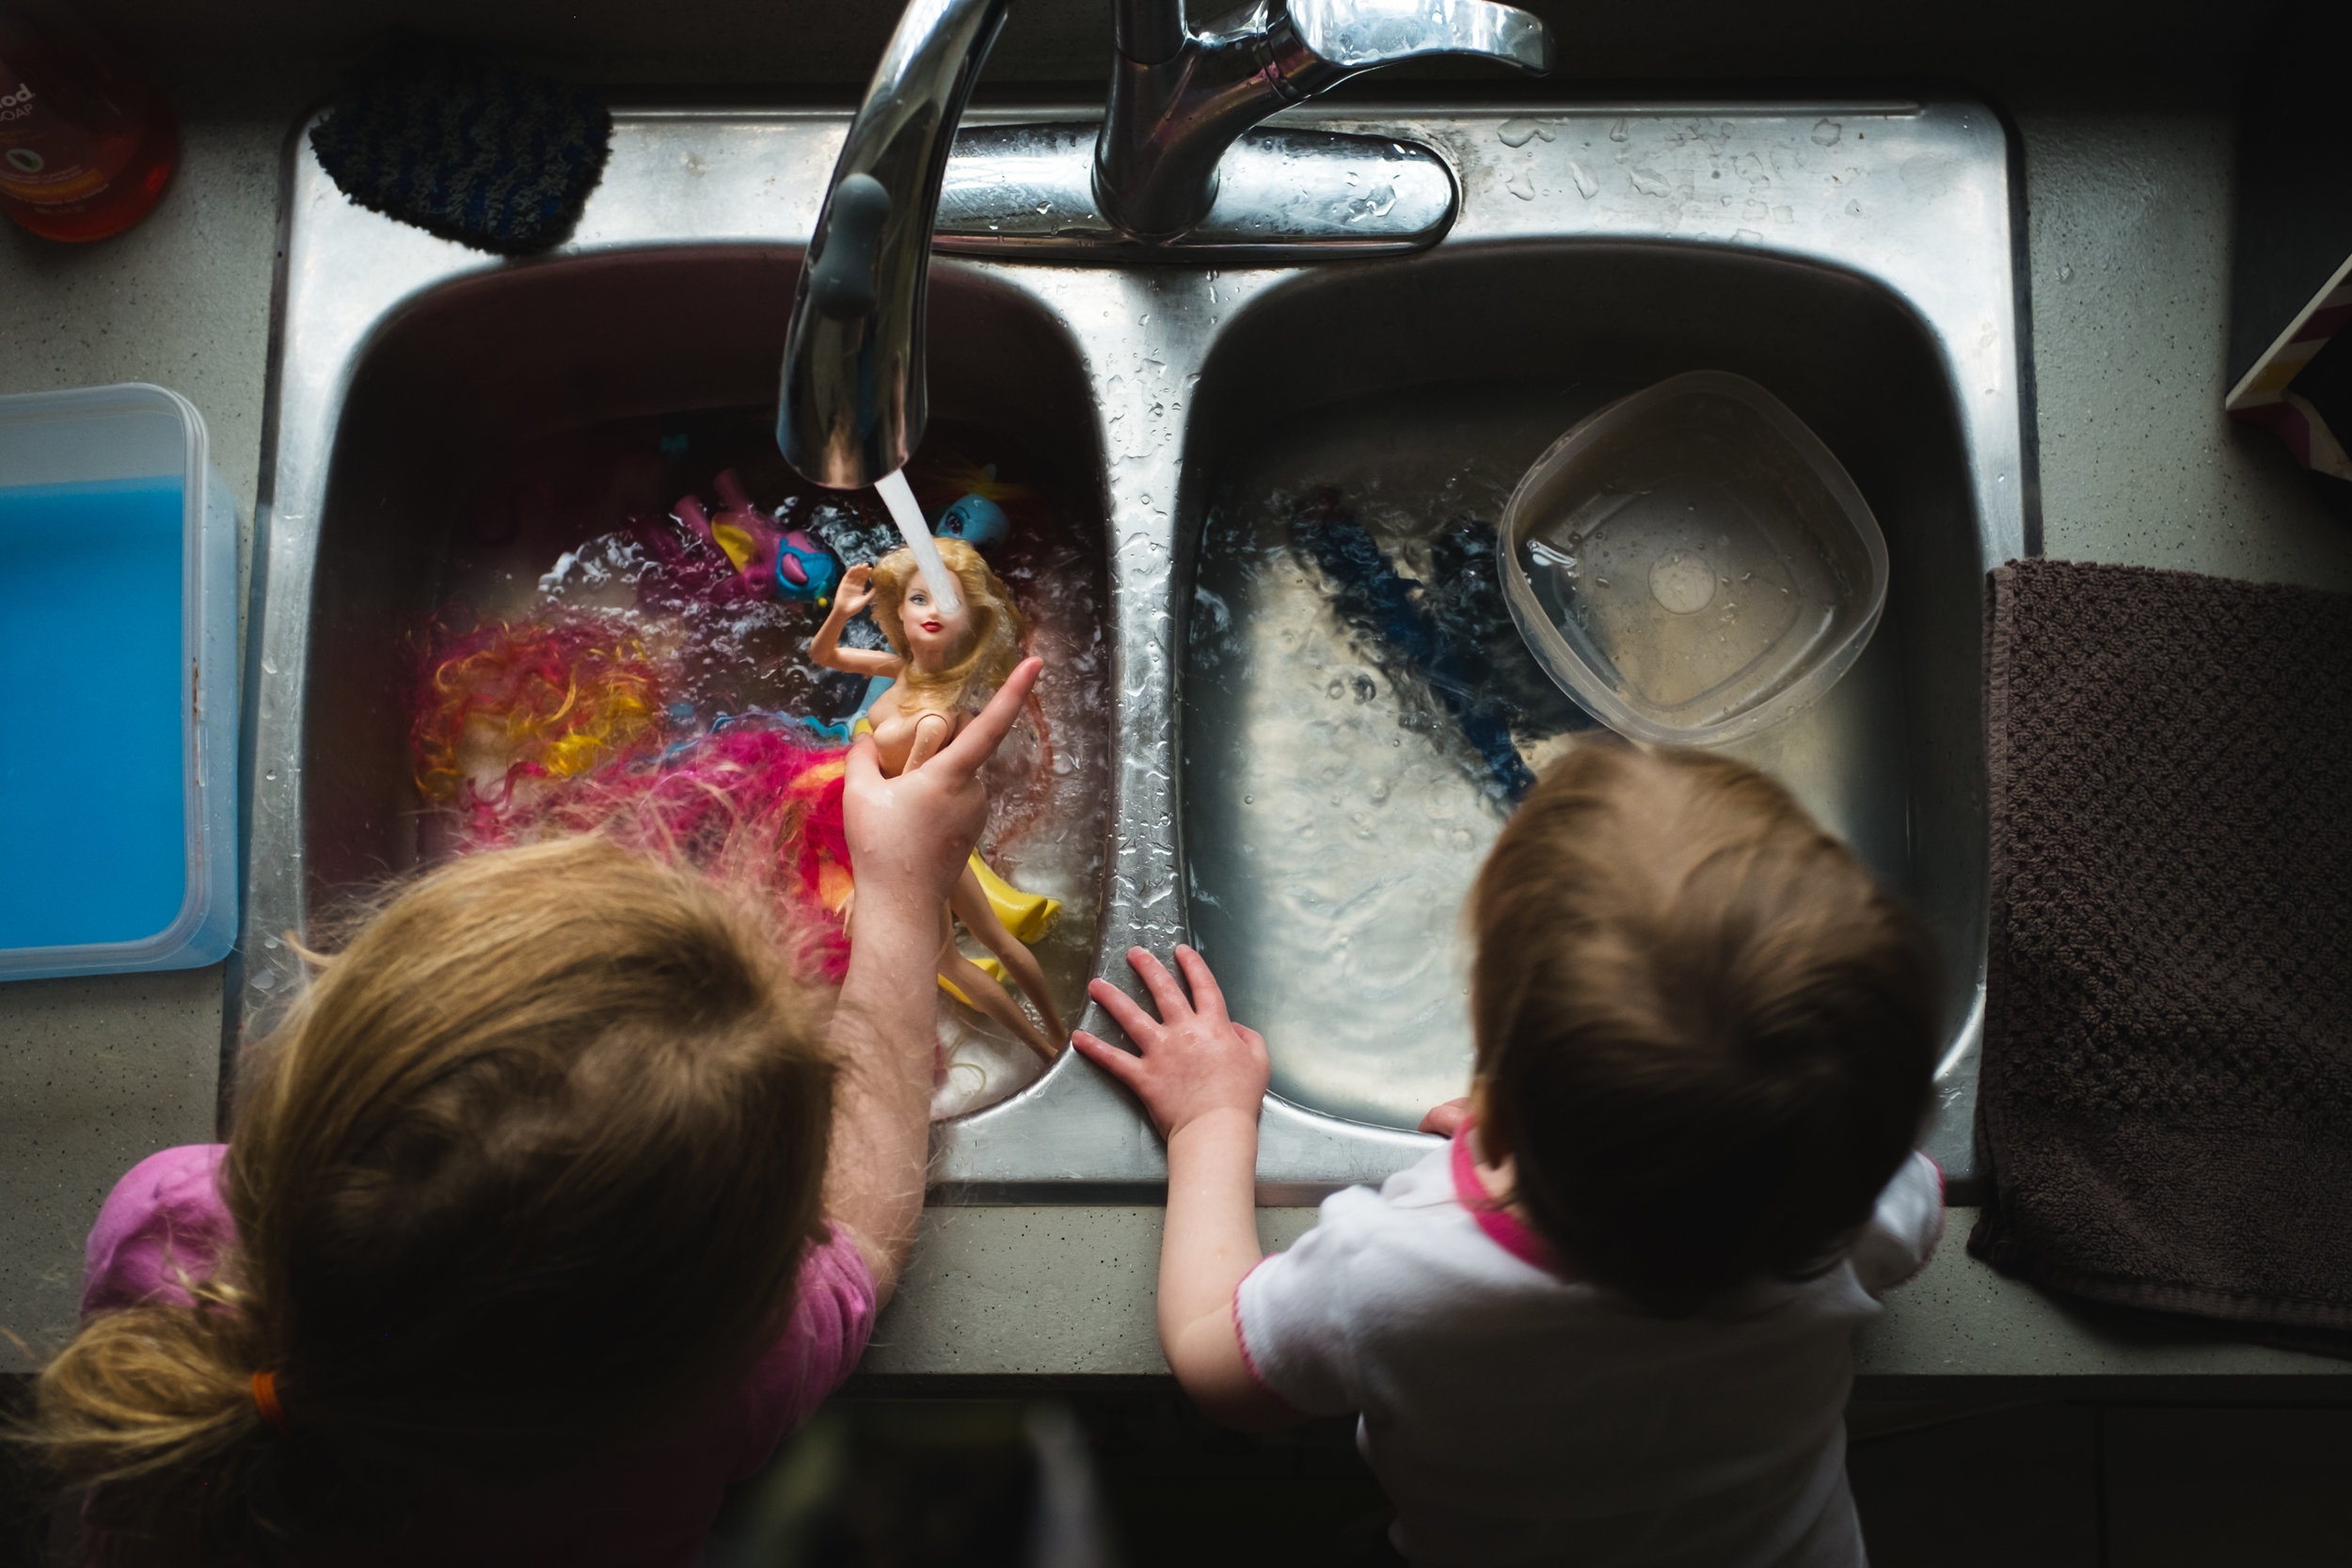 sisters play in the sink.jpg